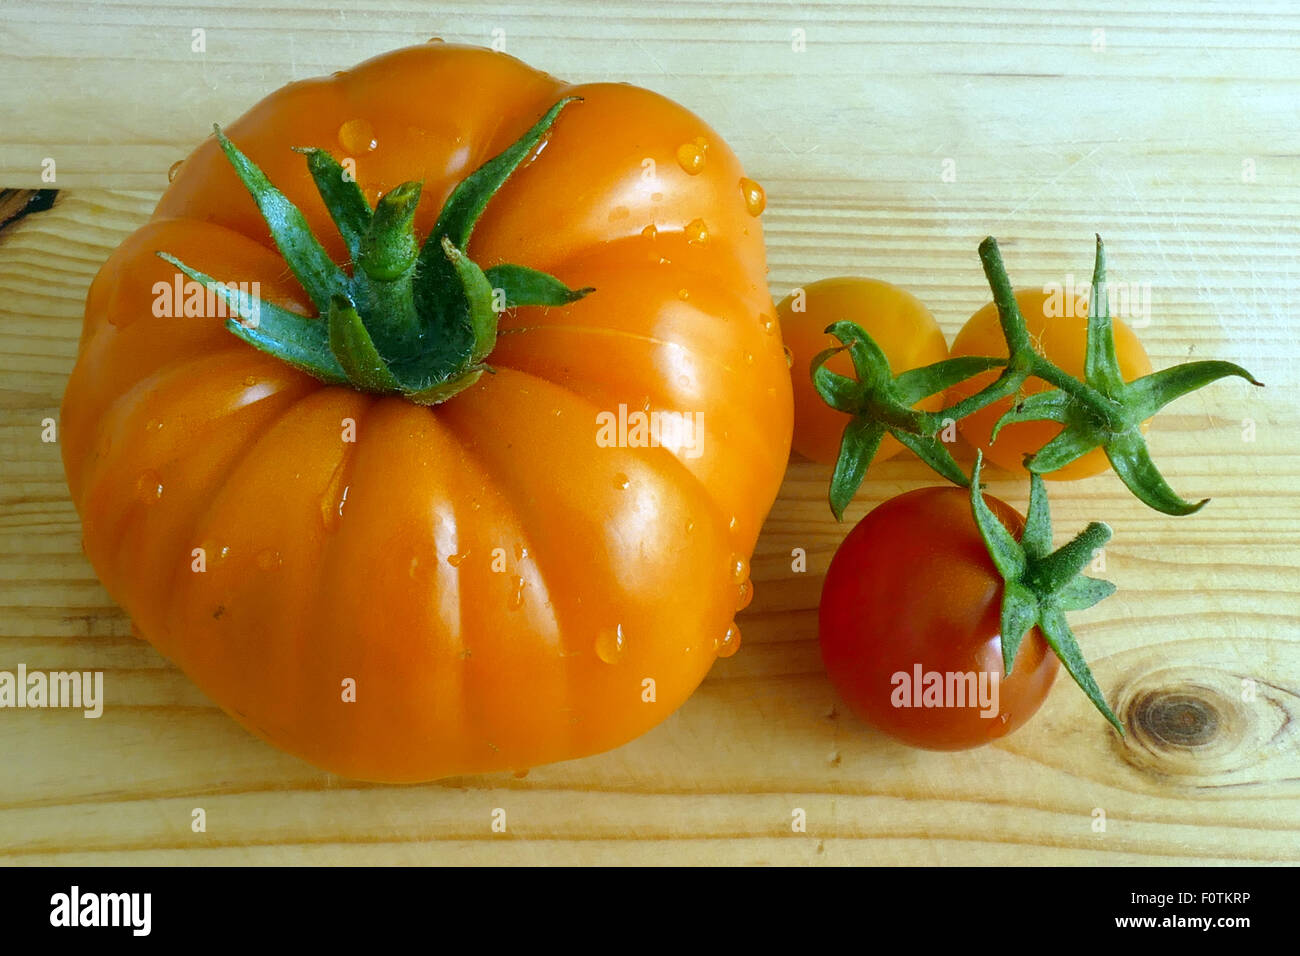 Fresh Fruits And Vegetables From A Home Garden Close Up Stock Photo